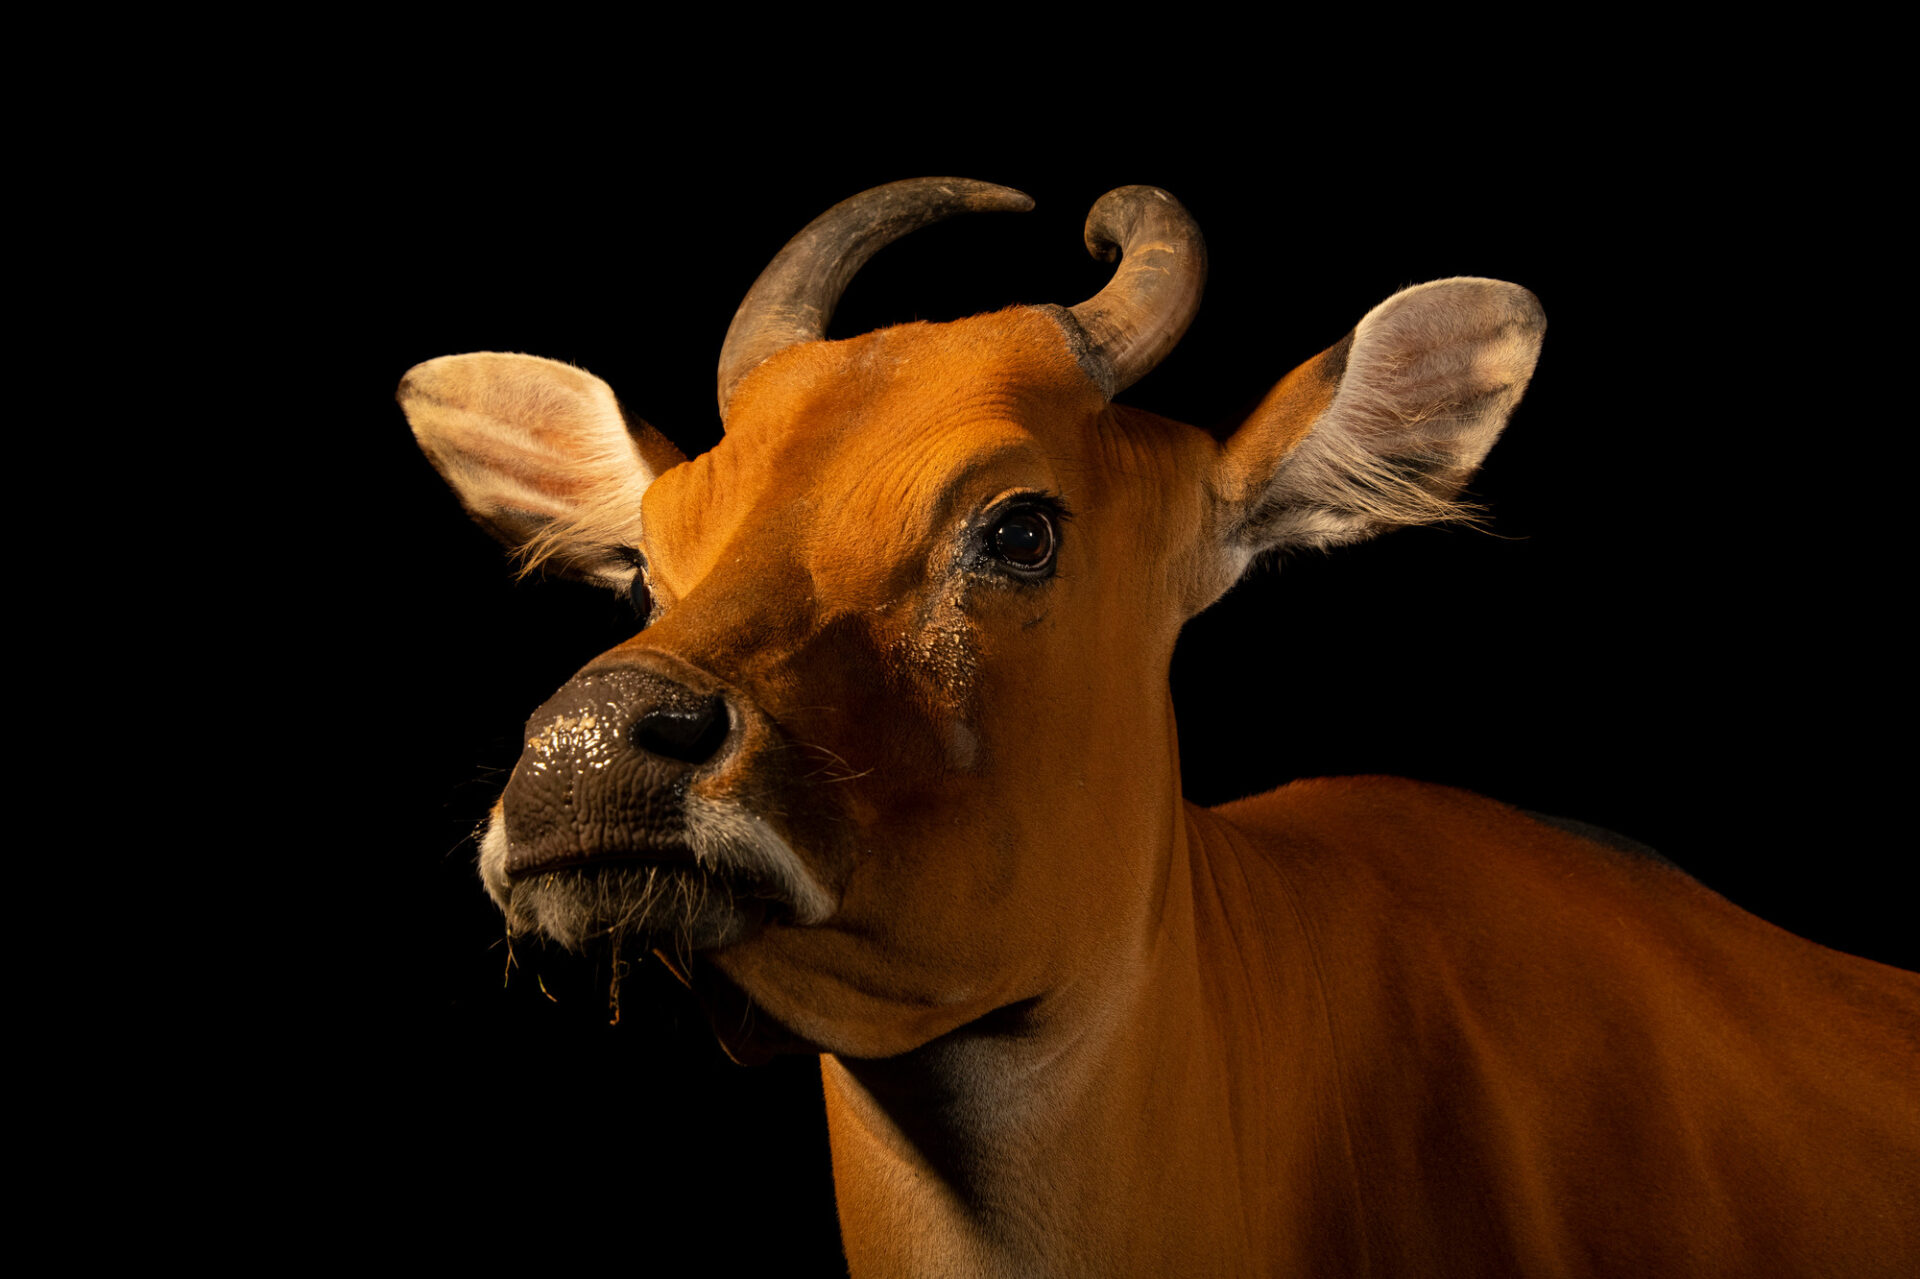 Photo: An endangered Javan banteng (Bos javanicus javanicus) at the Berlin Zoo.